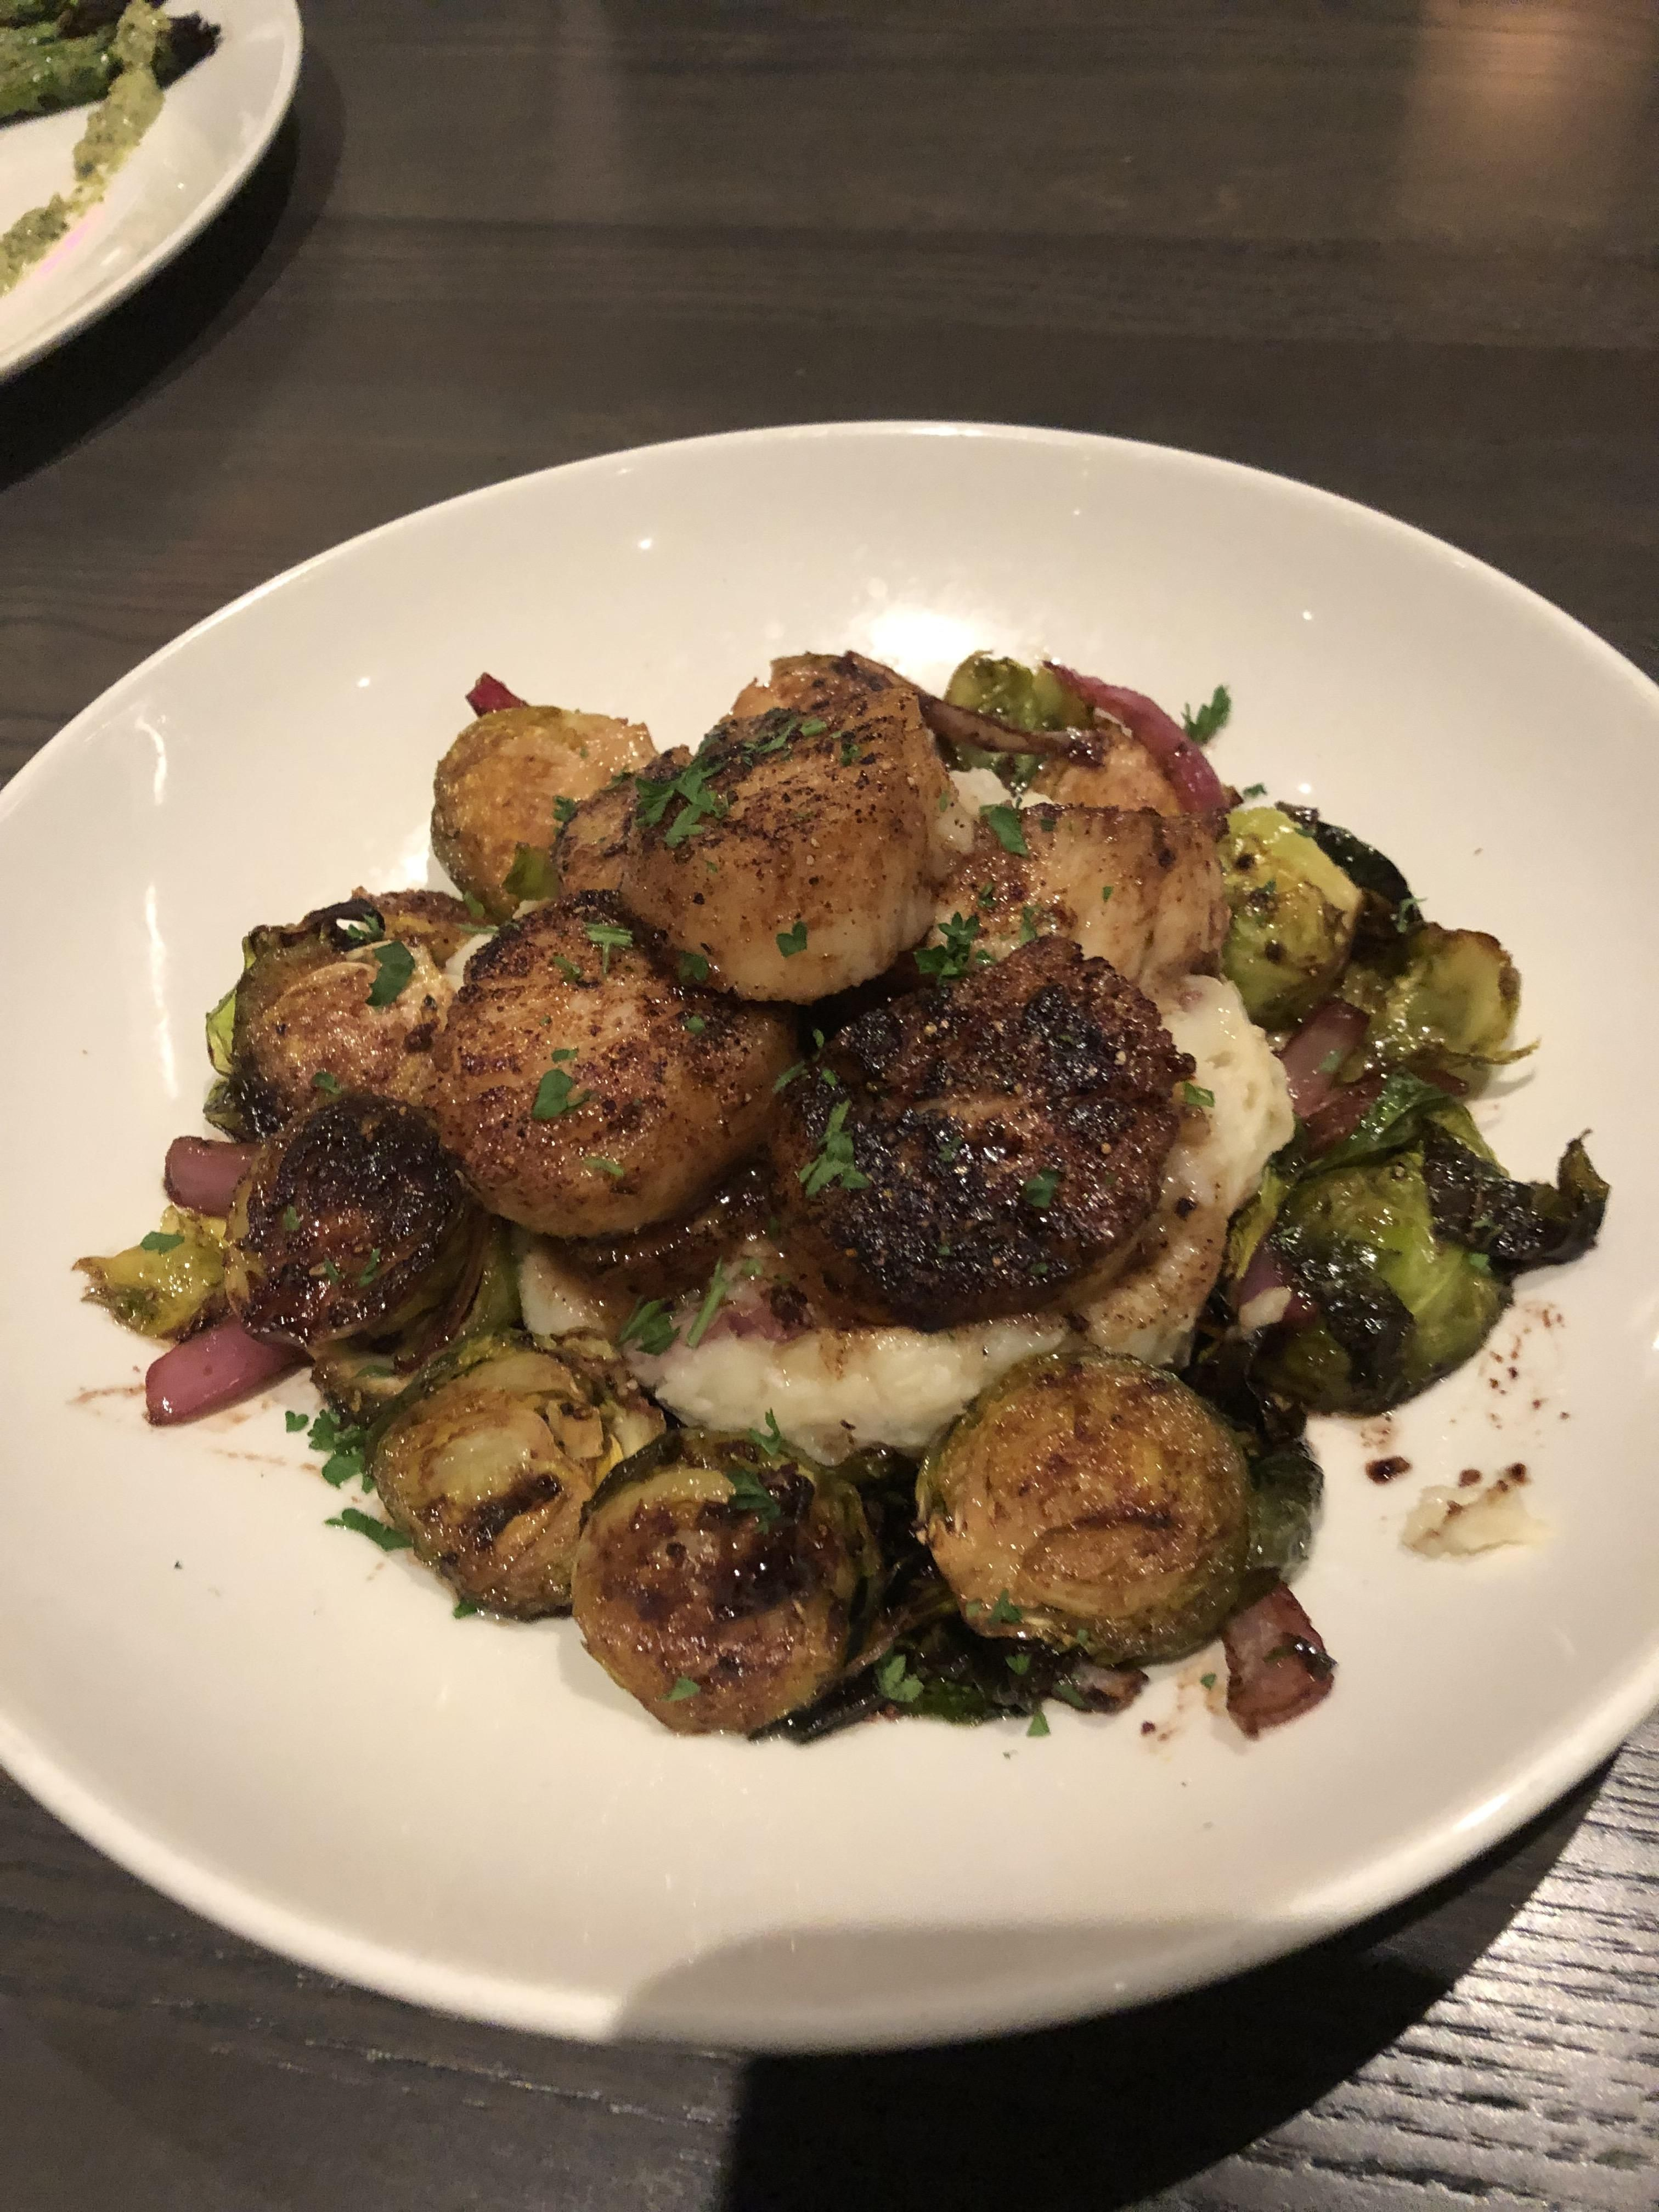 [I ate] seared scallops w/ smashed potatoes and roasted Brussel sprouts #smashedbrusselsprouts [I ate] seared scallops w/ smashed potatoes and roasted Brussel sprouts #smashedbrusselsprouts [I ate] seared scallops w/ smashed potatoes and roasted Brussel sprouts #smashedbrusselsprouts [I ate] seared scallops w/ smashed potatoes and roasted Brussel sprouts #smashedbrusselsprouts [I ate] seared scallops w/ smashed potatoes and roasted Brussel sprouts #smashedbrusselsprouts [I ate] seared scallops w #smashedbrusselsprouts